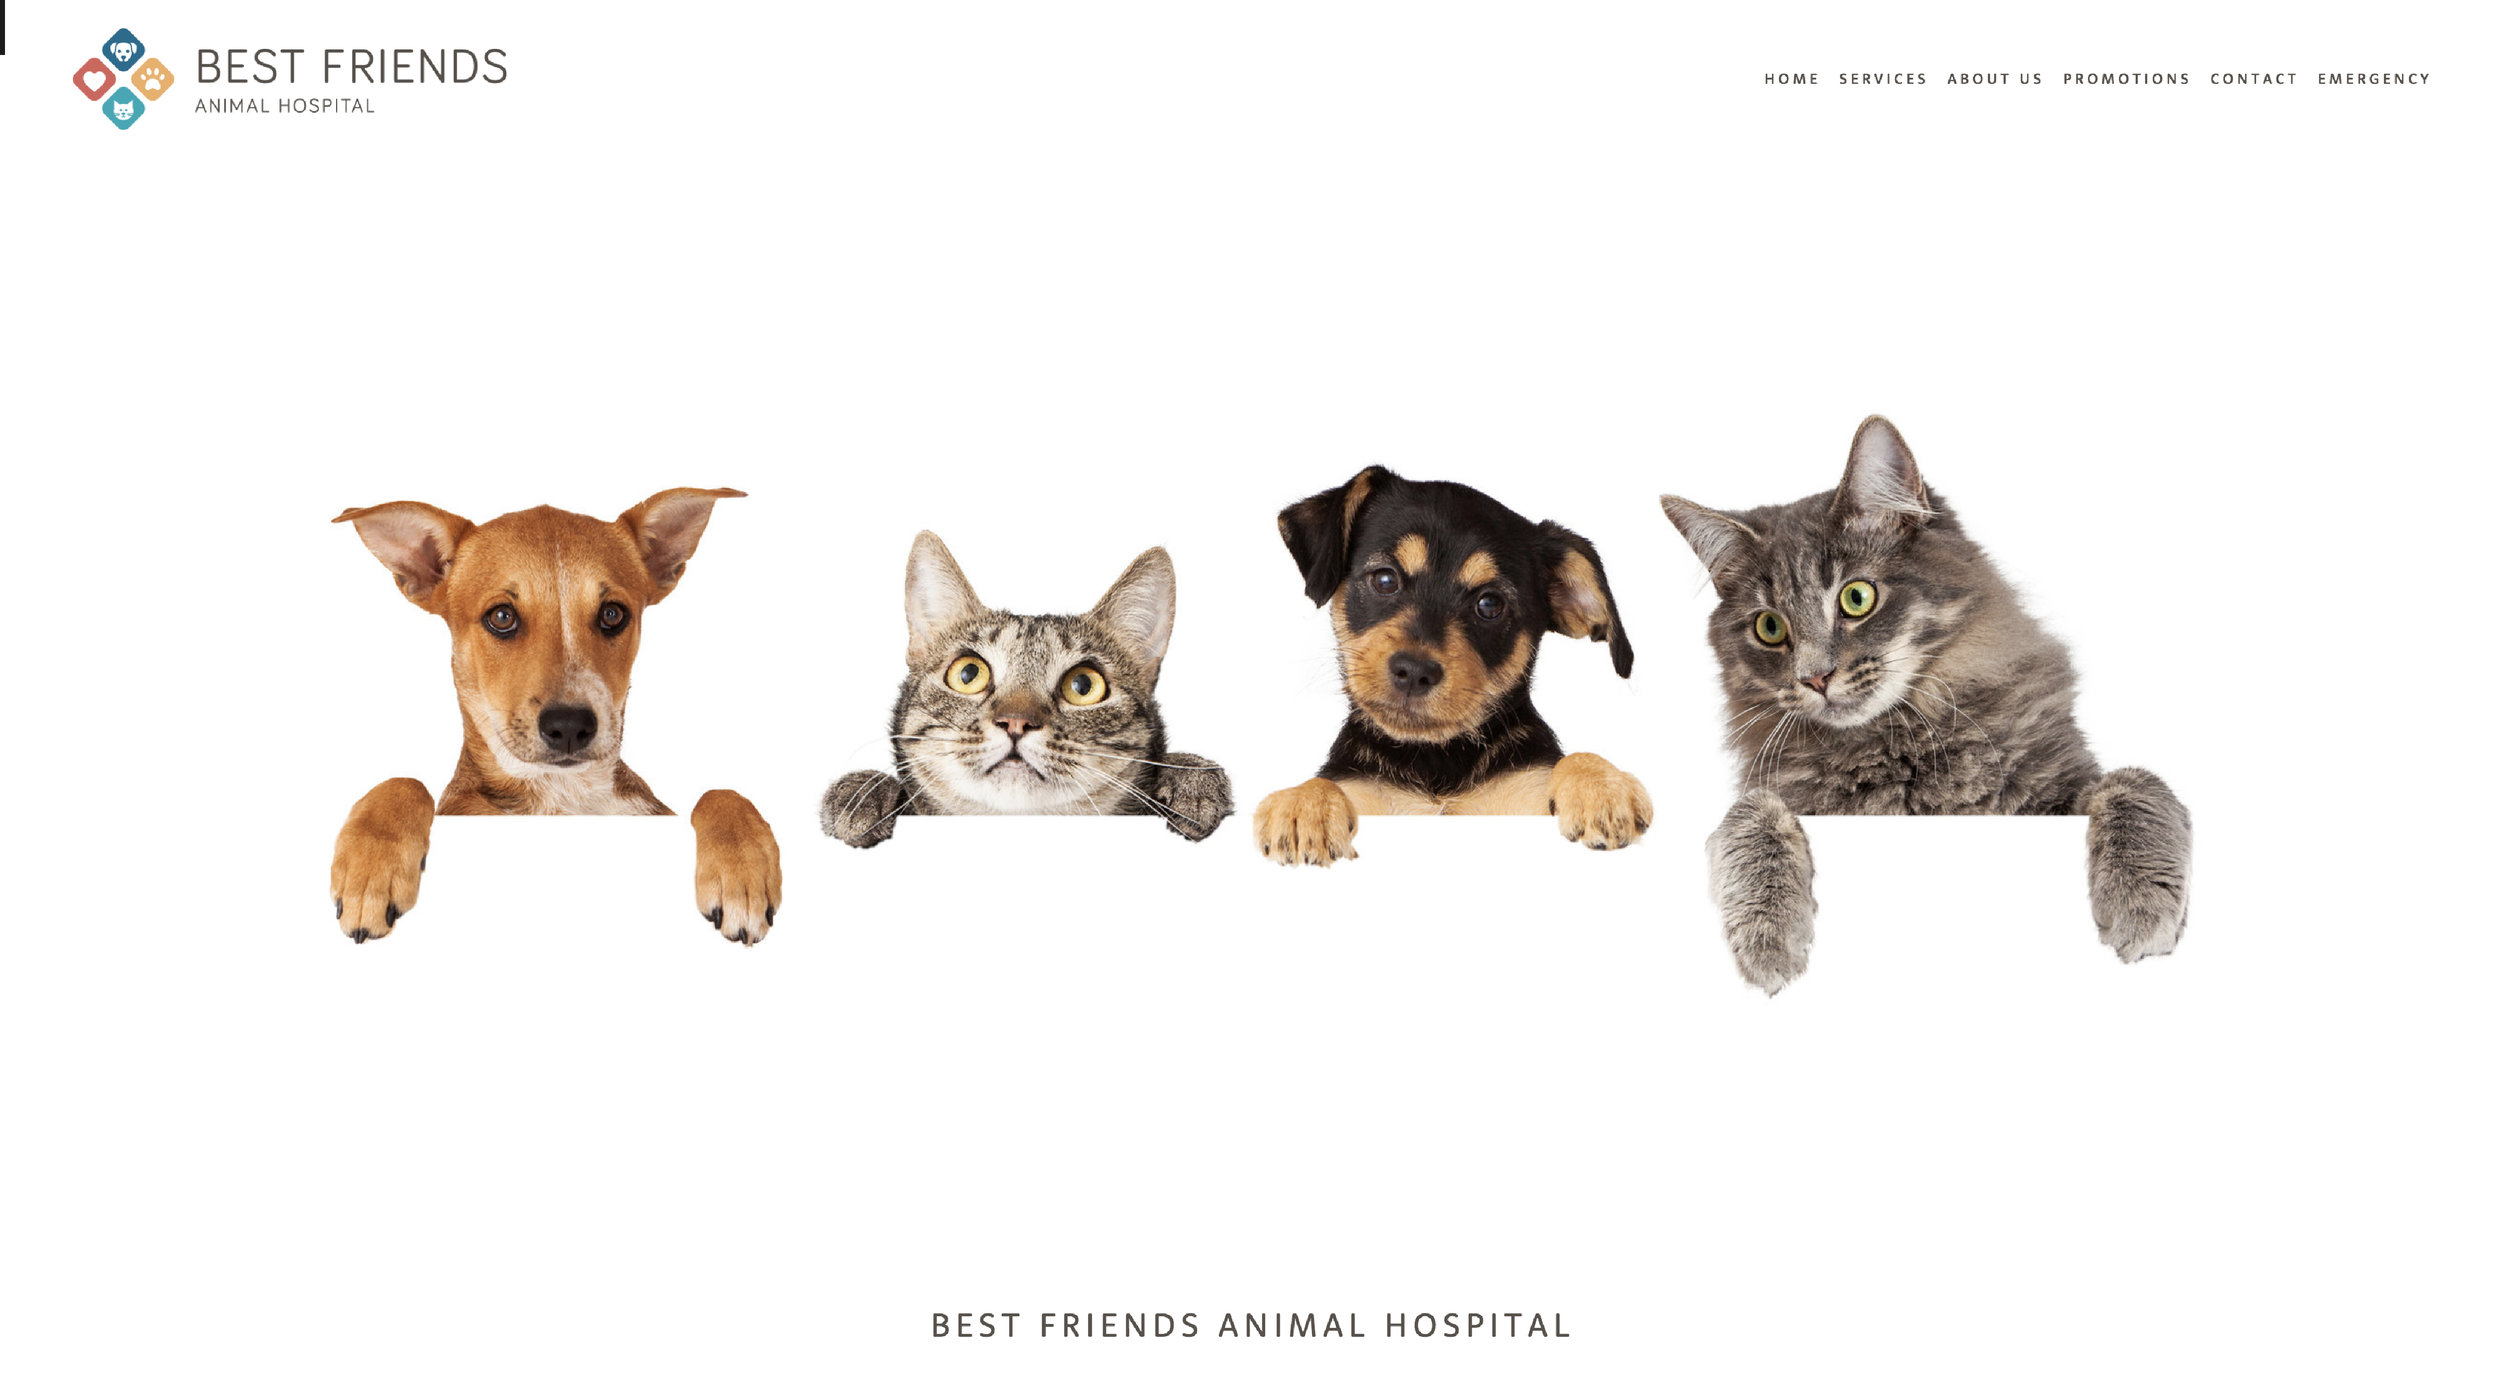 Best Friends Animal Hospital